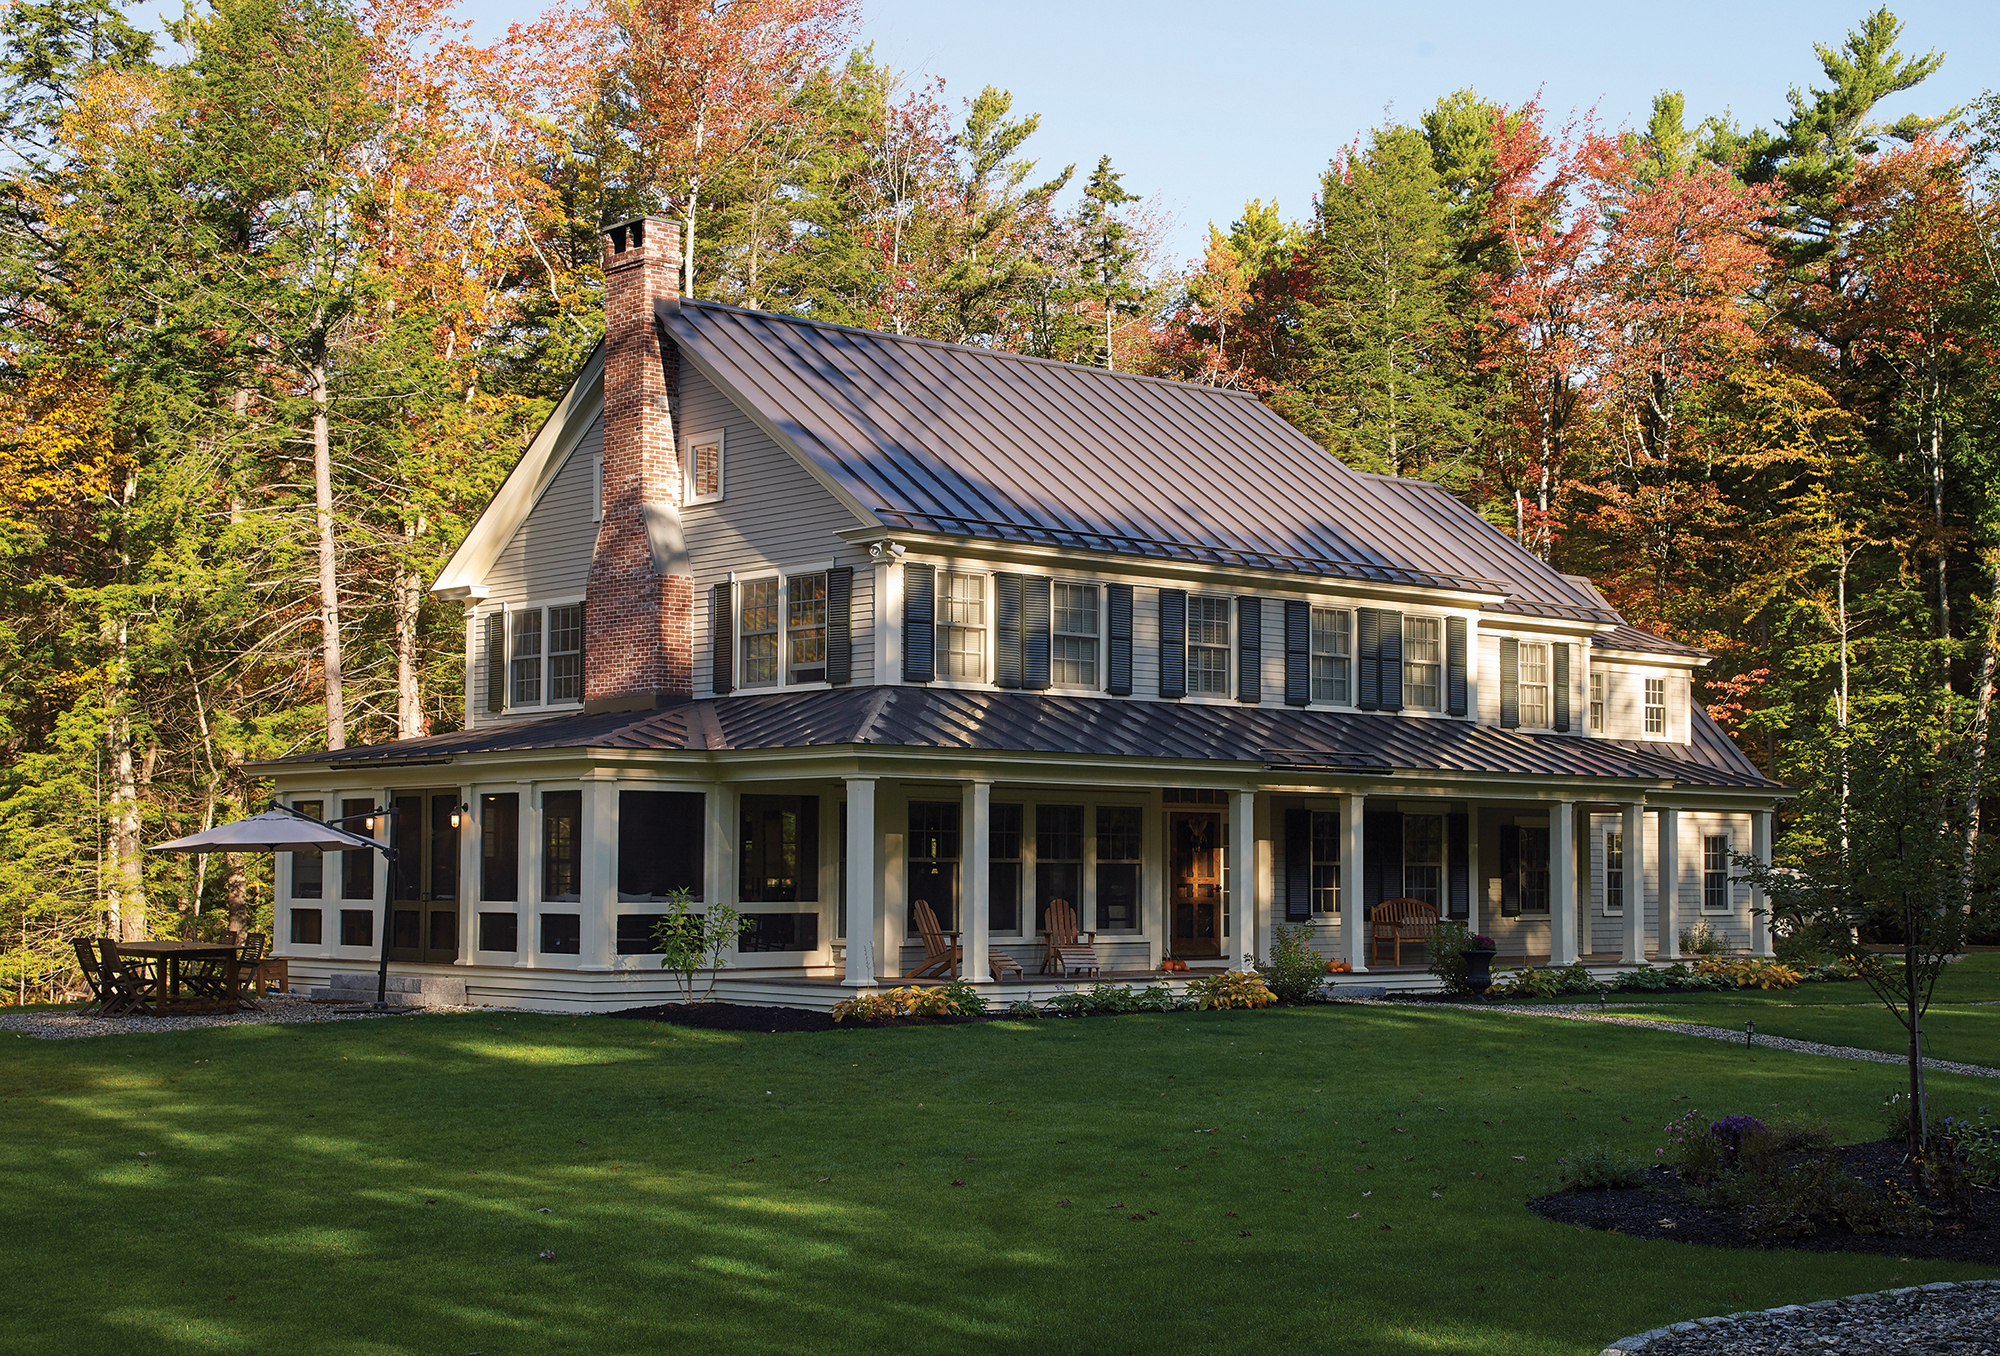 knickerbocker-group-project-chestnut-way-maine-family-home-farmhouse-outdoor-living-barn-studio